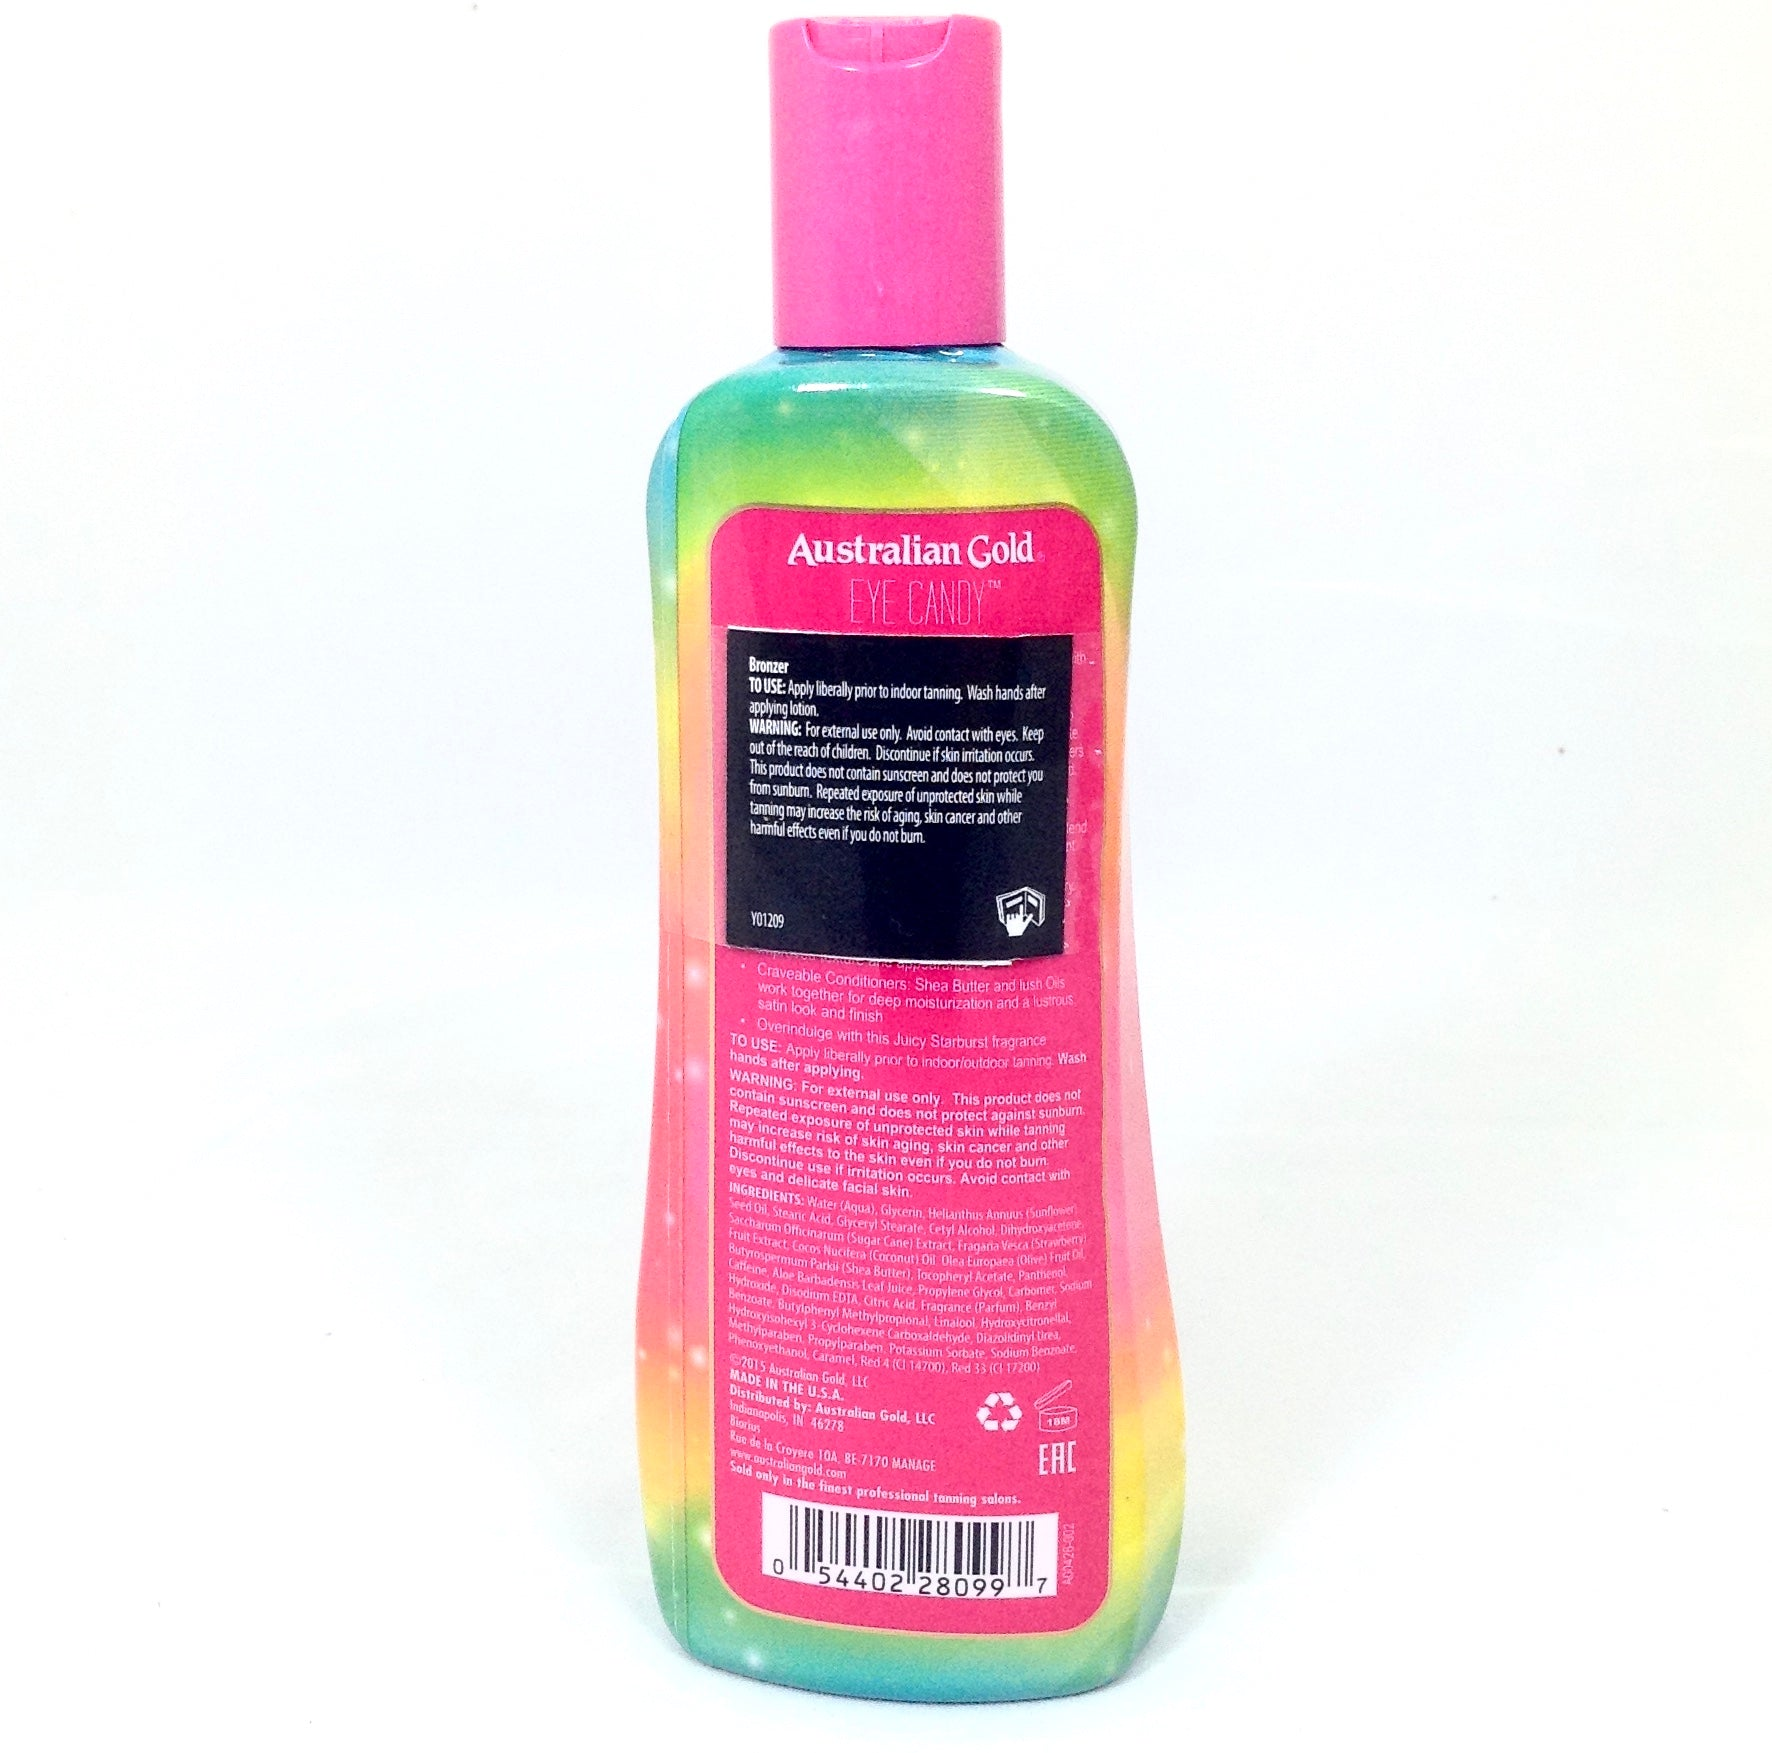 Australian Gold Eye Candy delayed bronzer tanning lotion